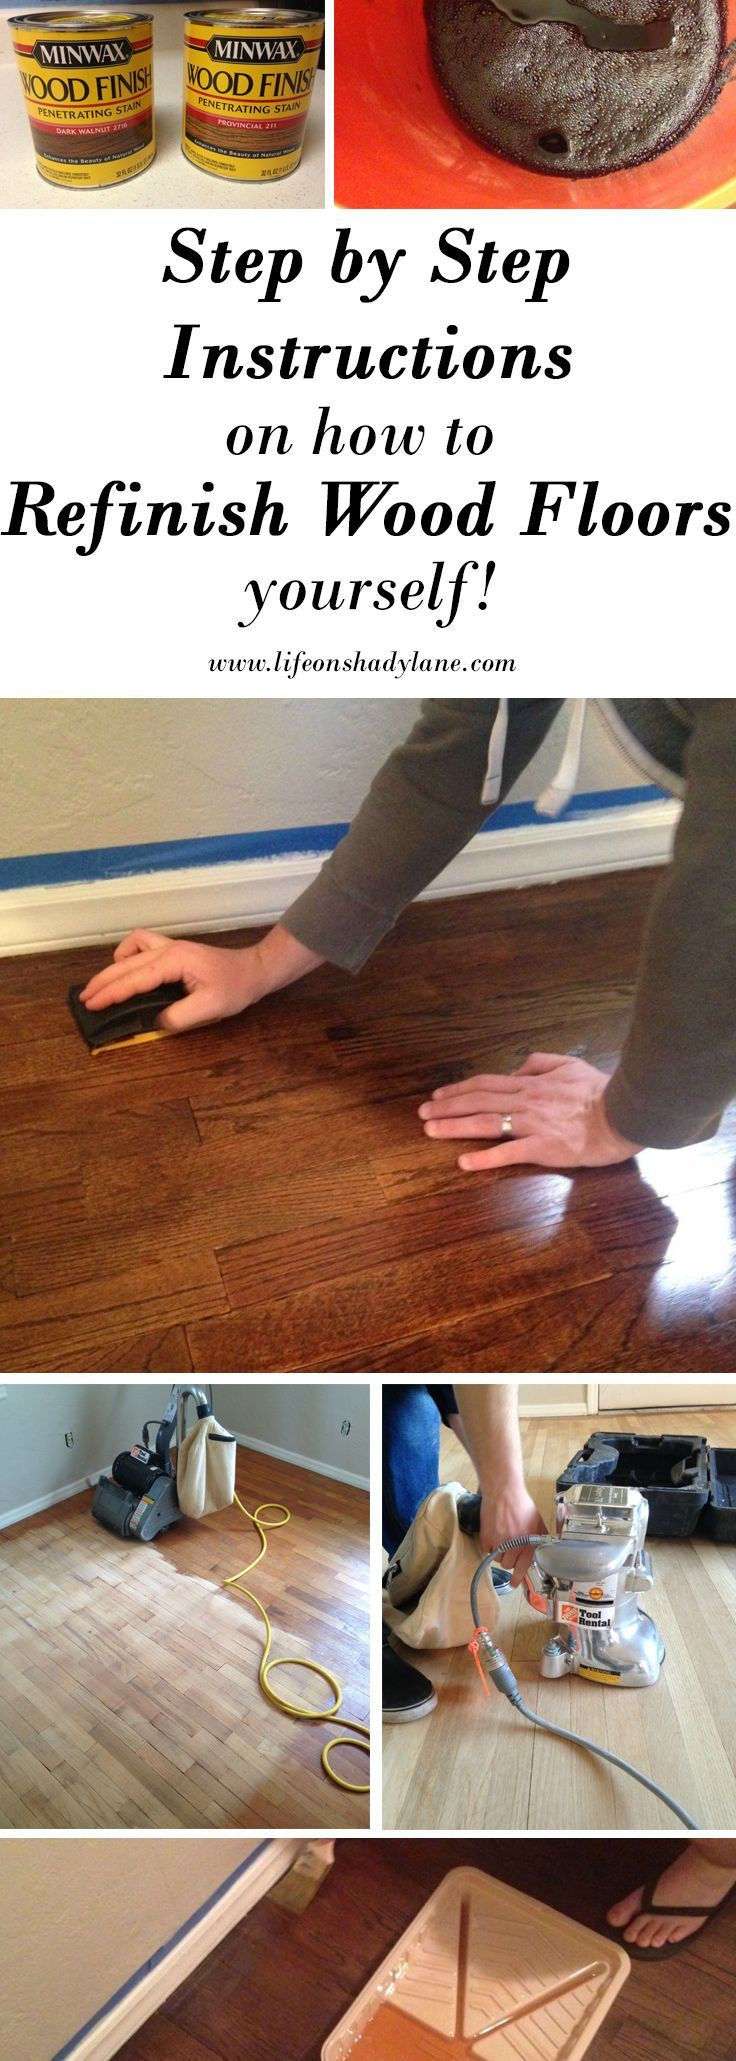 hardwood floor repair atlanta ga of best 286 projects images on pinterest woodworking wood projects for how to refinish hardwood floors part 1